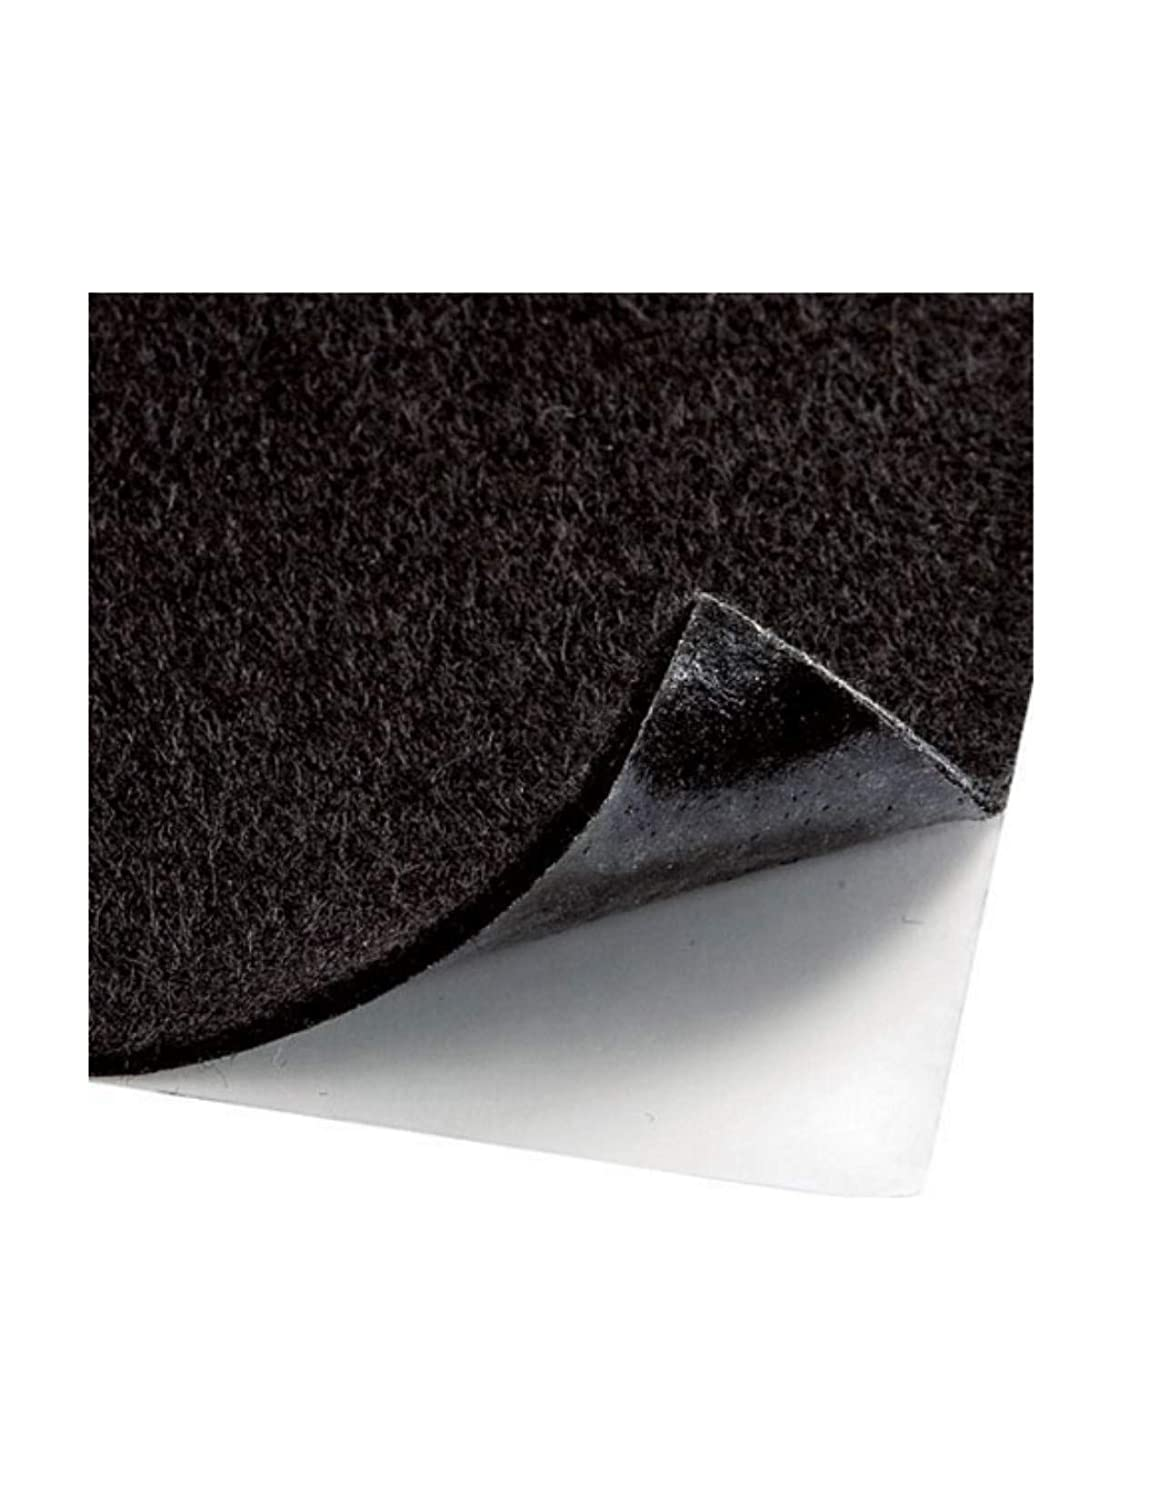 No Scratch Premium Acrylic PROTECTS SCRATCH PROOF 1001 USES Peel-N-Stick 12 X 10 FEET ROLL 1//16 THICK SELF ADHESIVE PROTECTIVE FELT